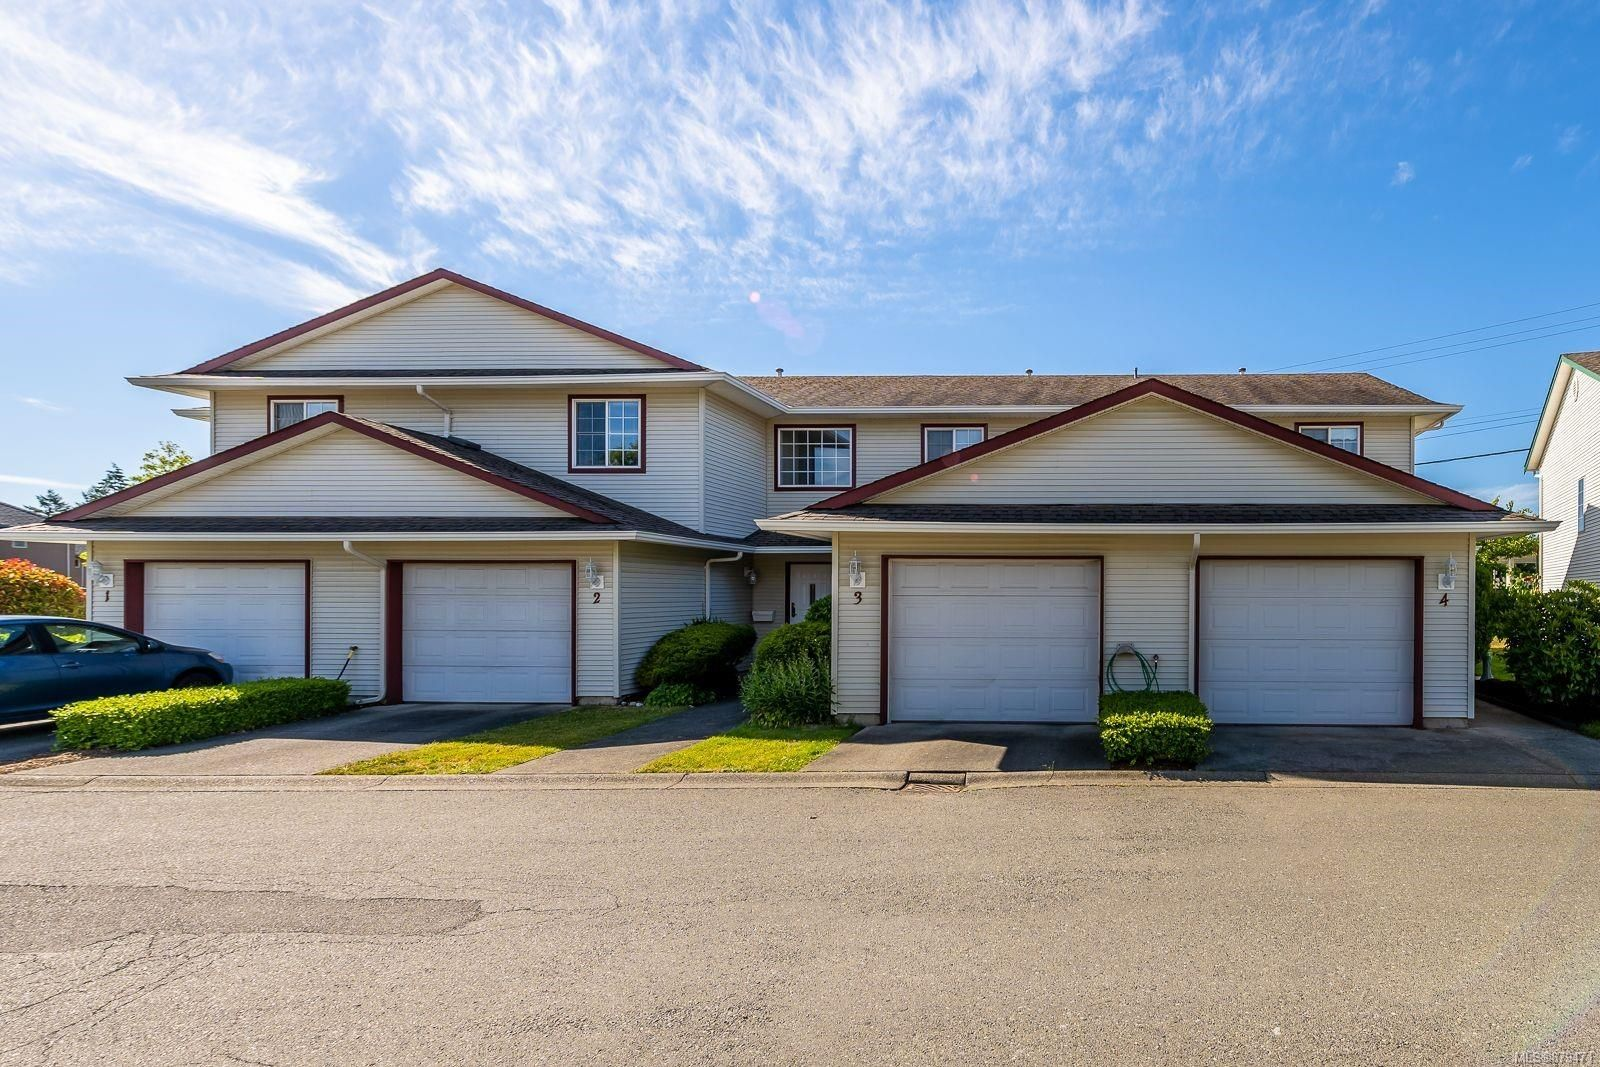 Main Photo: 3 717 Aspen Rd in : CV Comox (Town of) Row/Townhouse for sale (Comox Valley)  : MLS®# 879471